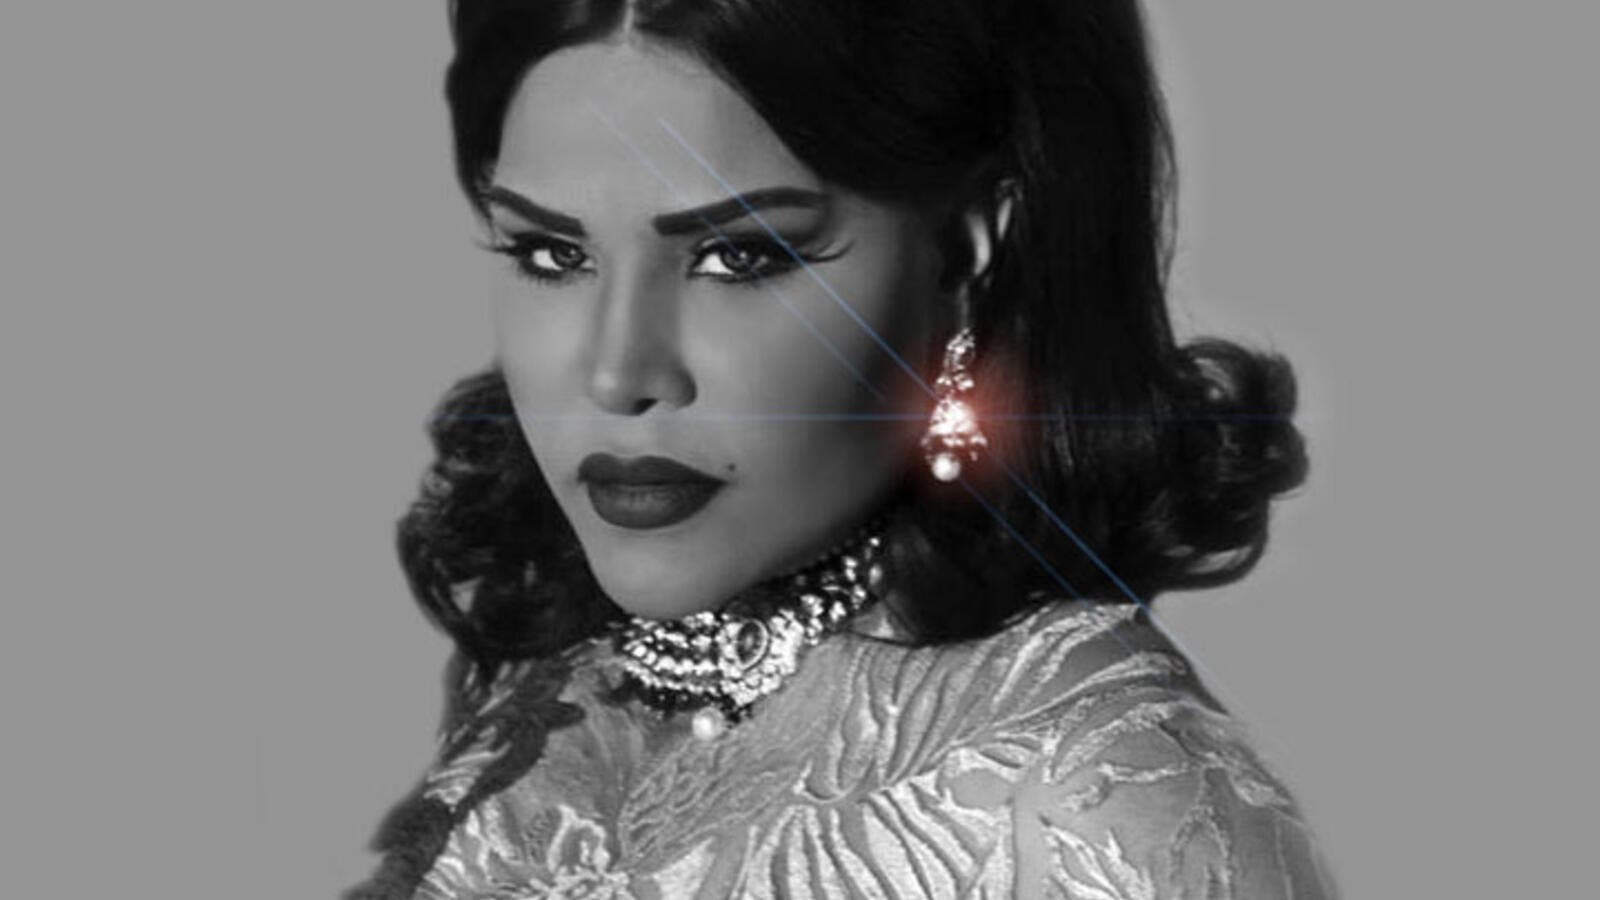 They say in the West, 'Treat them mean, keep them keen,' so is Ahlam right? (Image: Facebook)